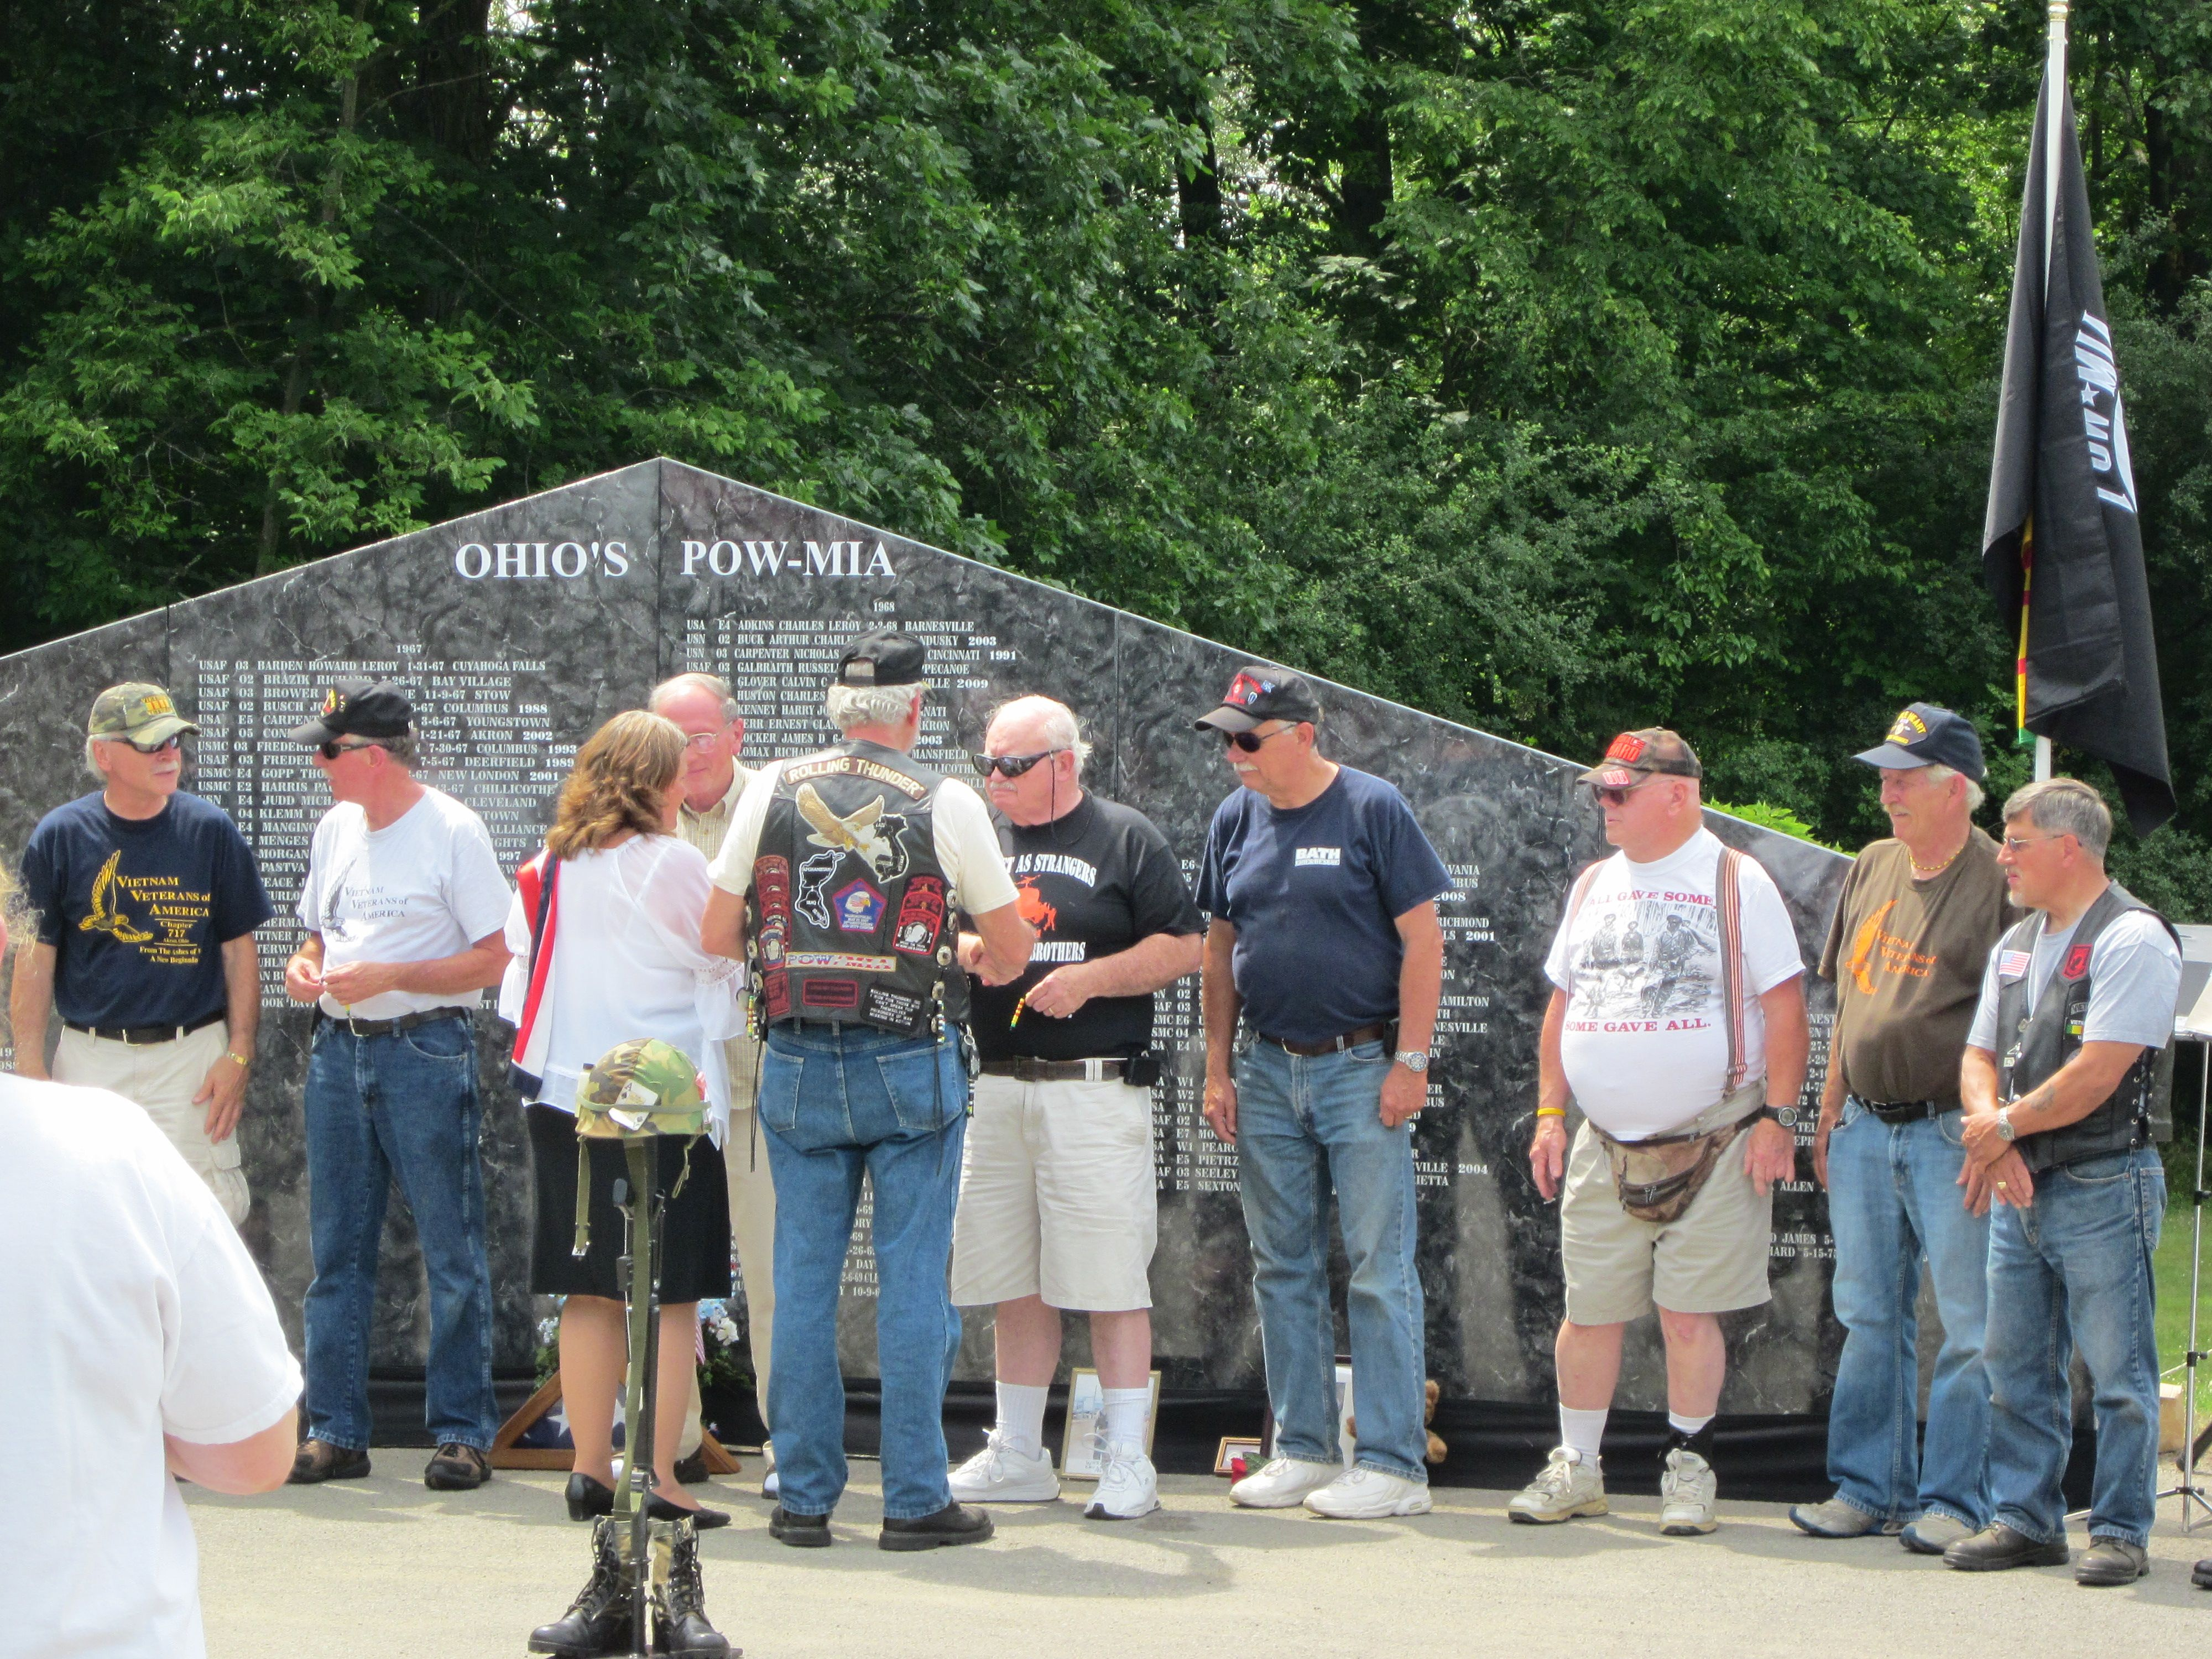 Vietnam Veterans being thanked for his service